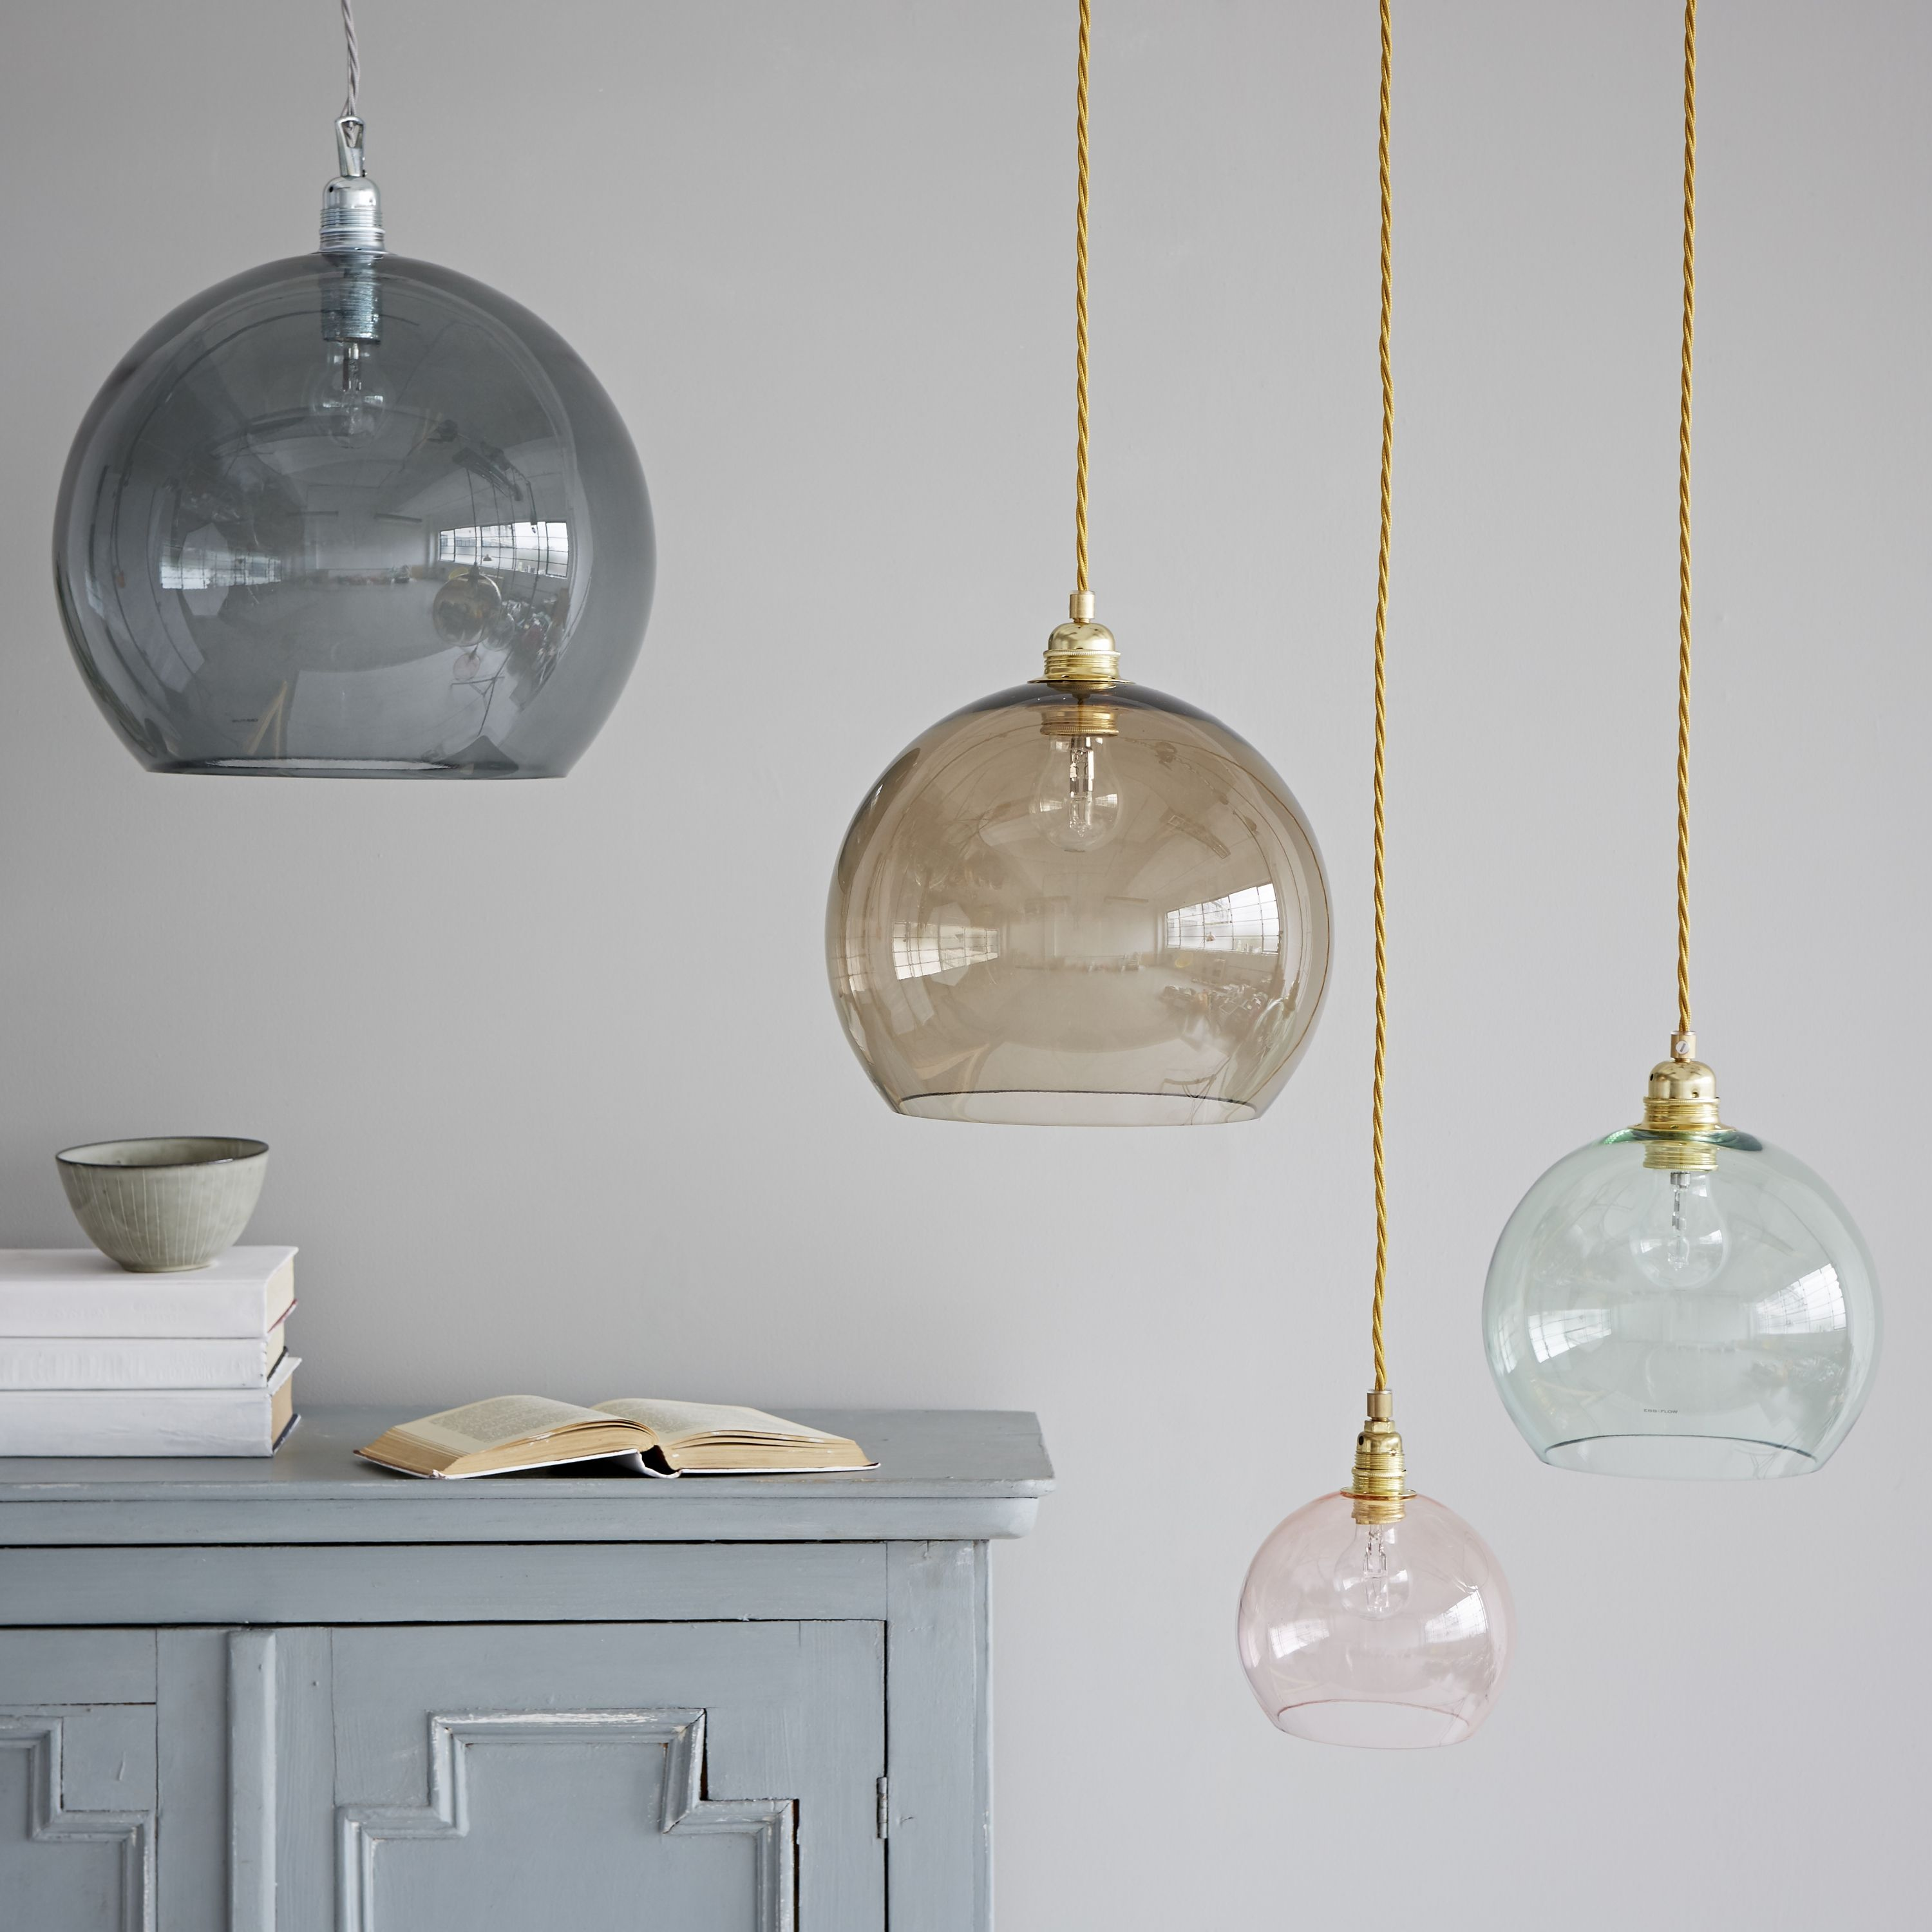 Coloured Glass Pendant Lights Glass Ceramic Pinterest - Coloured glass pendant lights kitchen